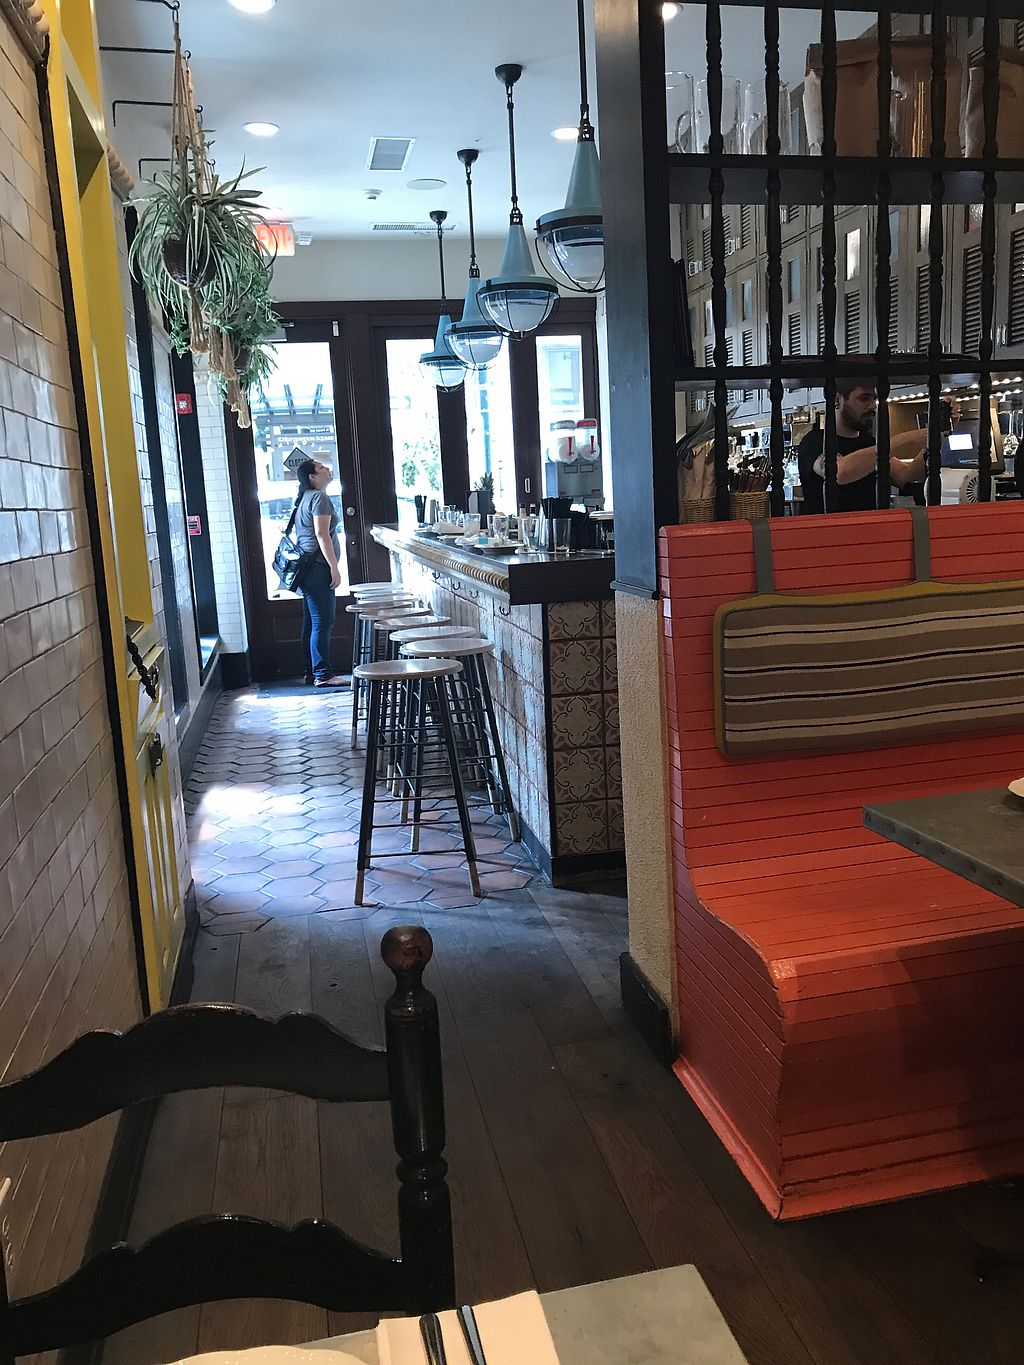 """Photo of Bar Bombon  by <a href=""""/members/profile/gemmafee"""">gemmafee</a> <br/>restaurant seating <br/> July 20, 2017  - <a href='/contact/abuse/image/61877/282348'>Report</a>"""